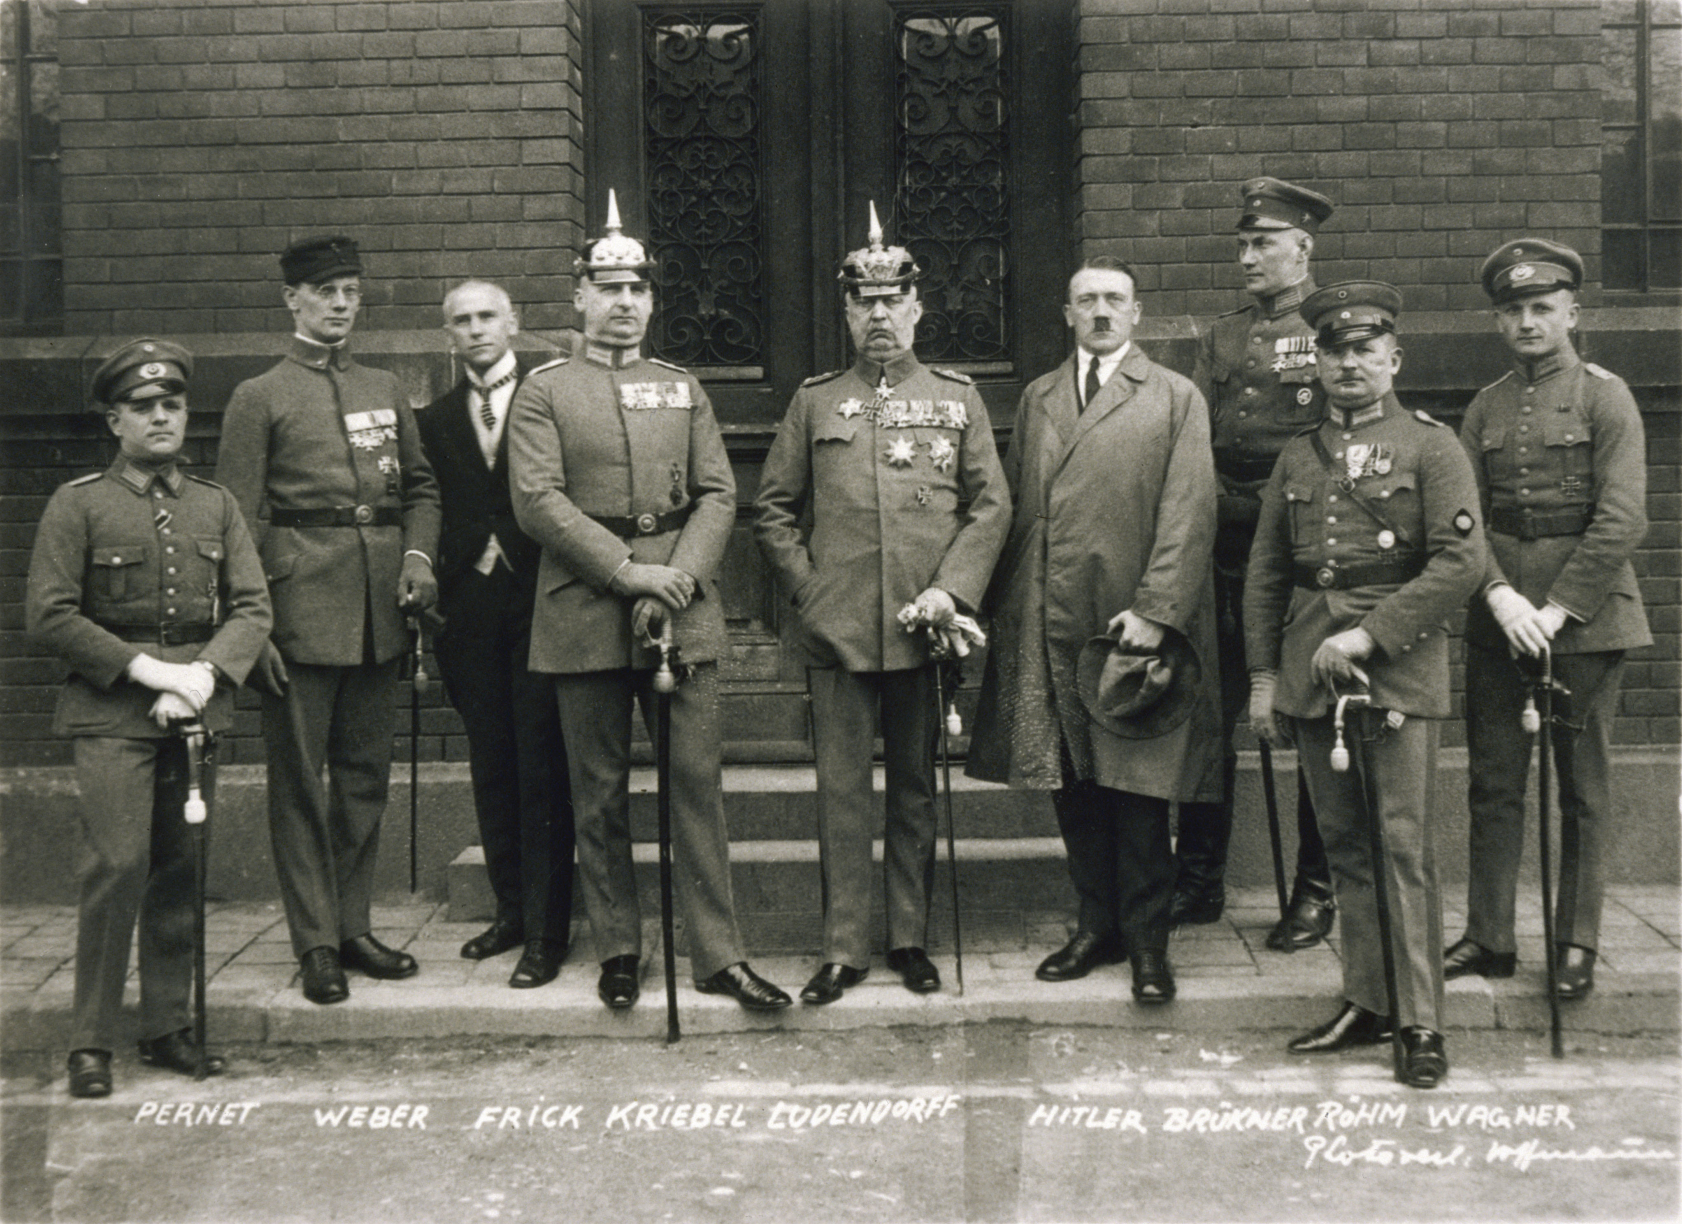 Ludendorff (center) with Hitler and other early Nazi leaders and prominent radical German nationalists Bundesarchiv Bild 102-00344A, München, nach Hitler-Ludendorff Prozess.jpg